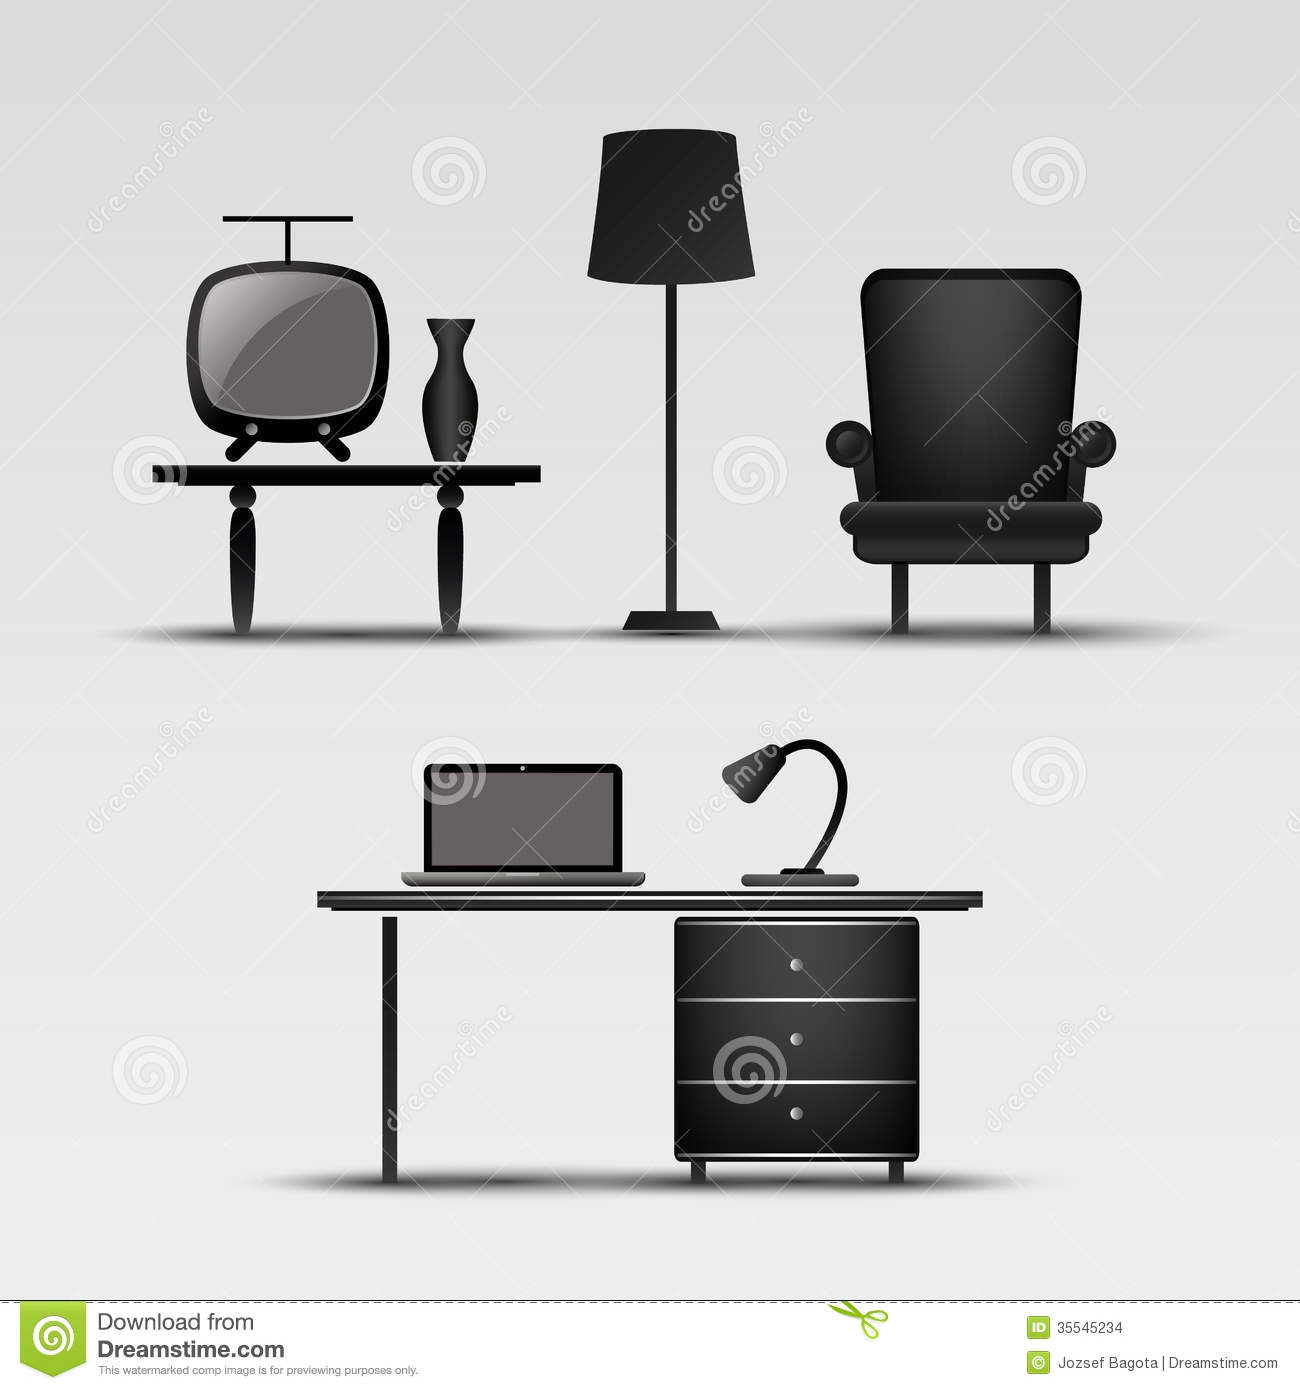 Home Interior Icons stock vector. Illustration of domestic ...